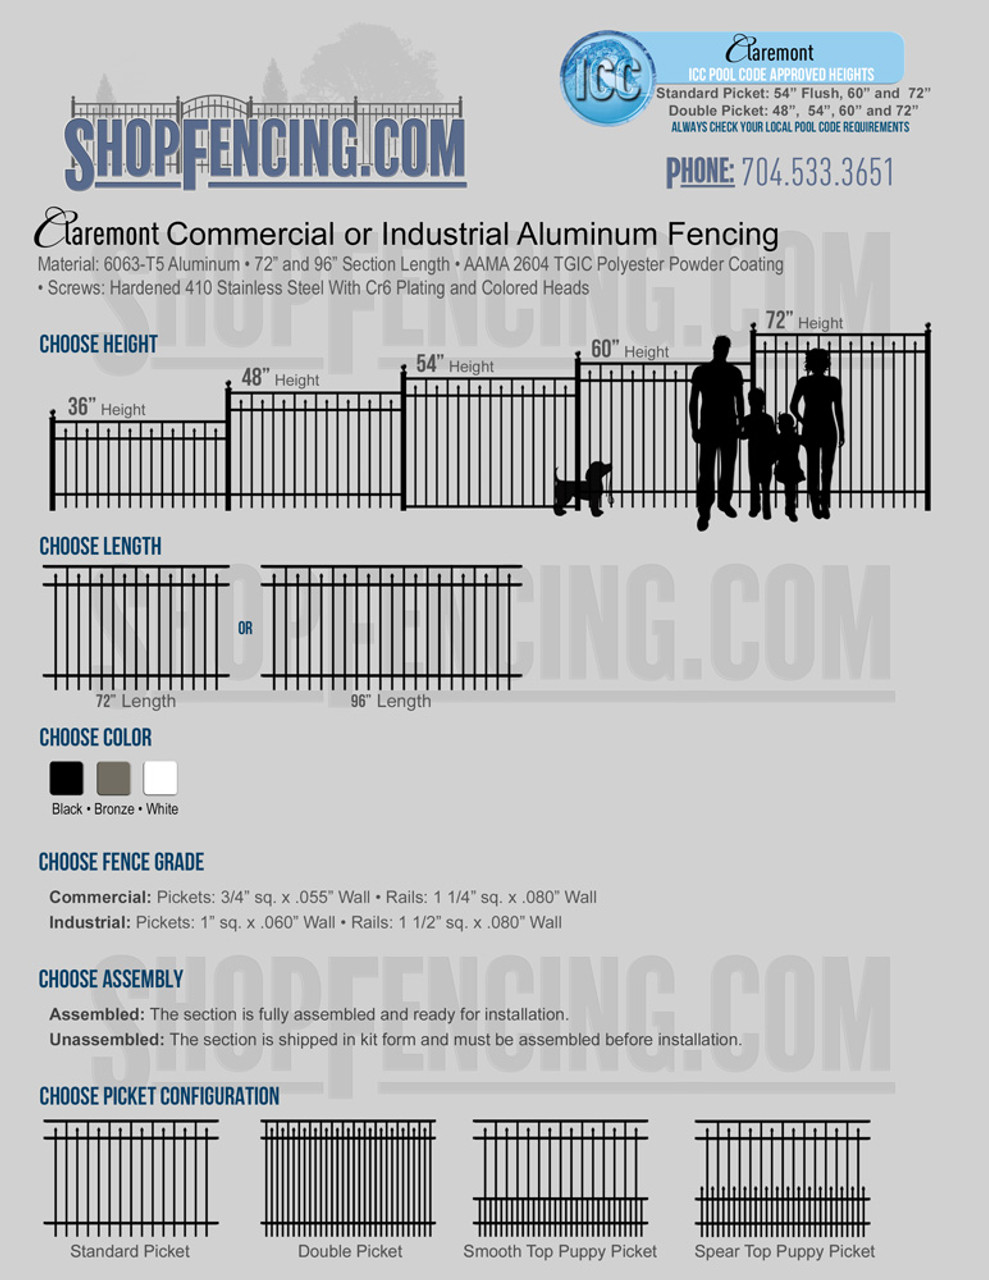 Commercial or Industrial Claremont Aluminum Fencing From ShopFencing.com